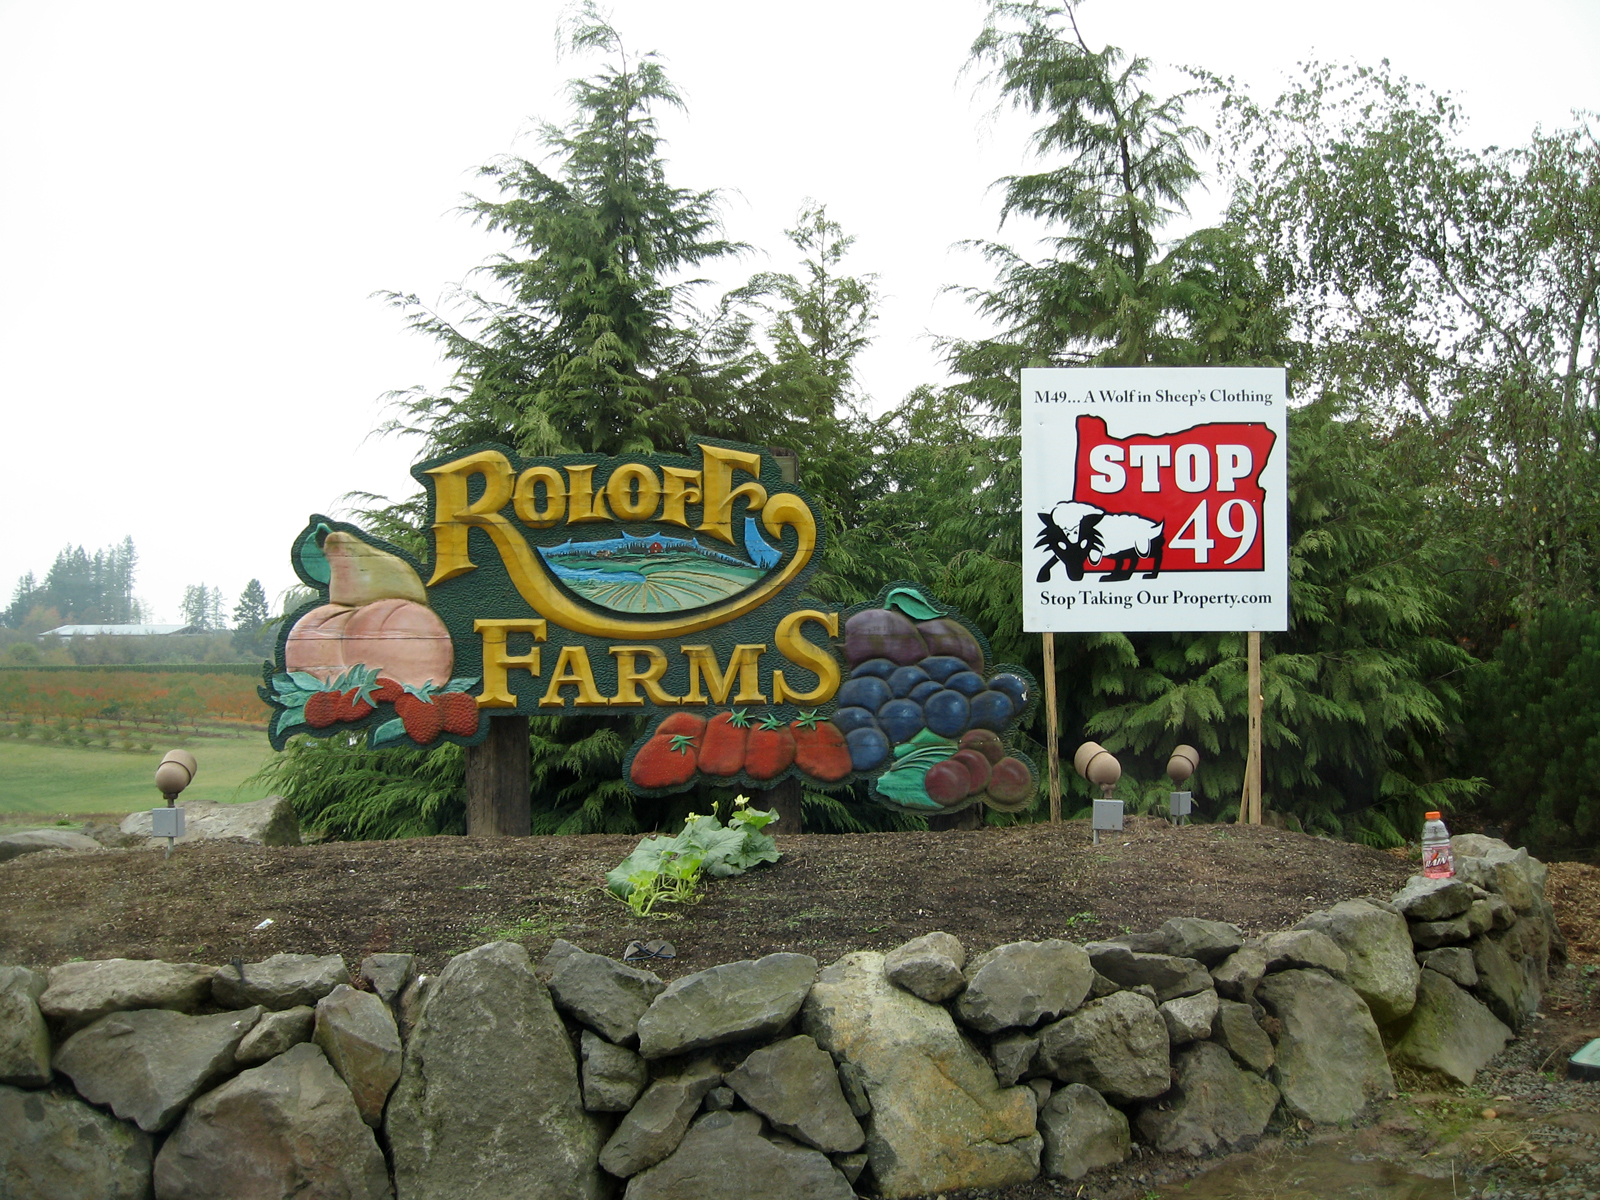 roloff_farms_sign